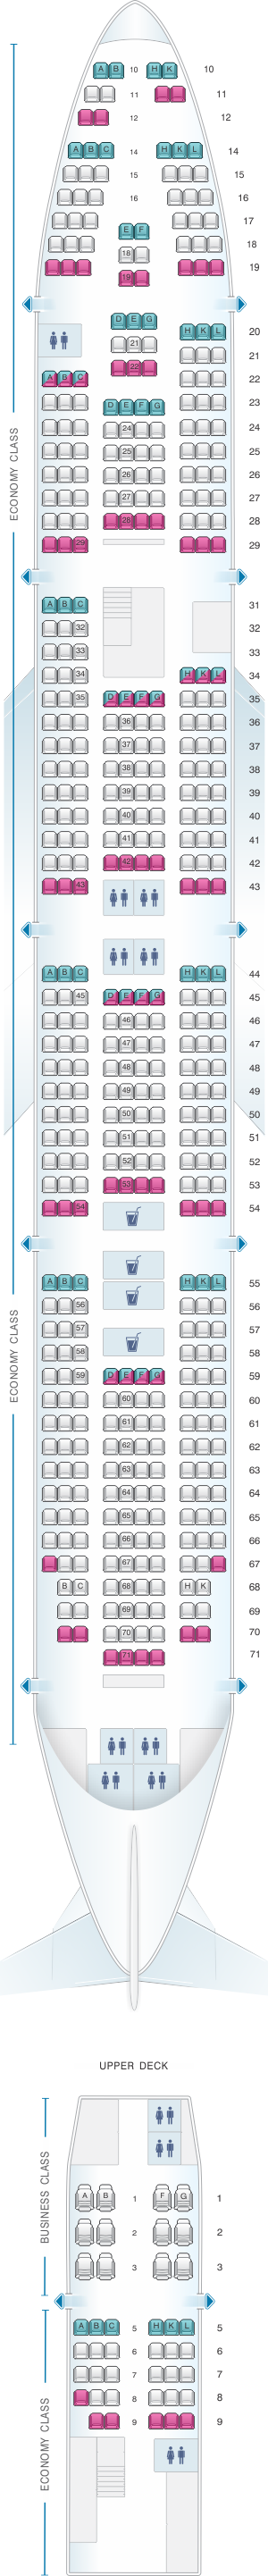 Seat map for Rossiya Airlines Boeing B747 400 V2